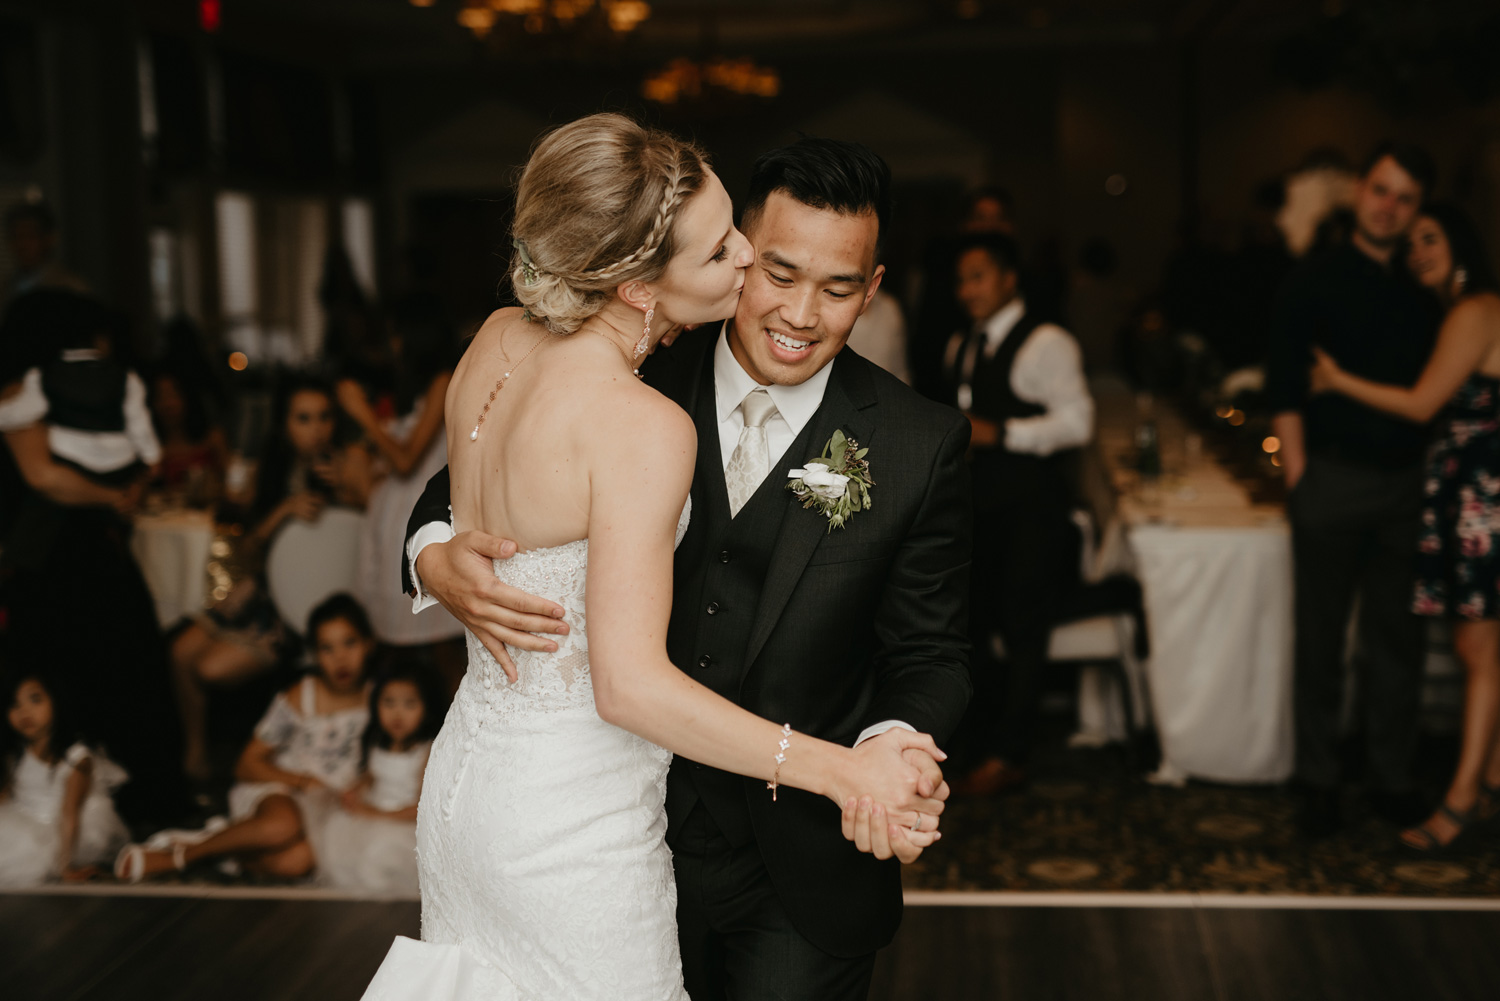 First wedding dance between bride and groom